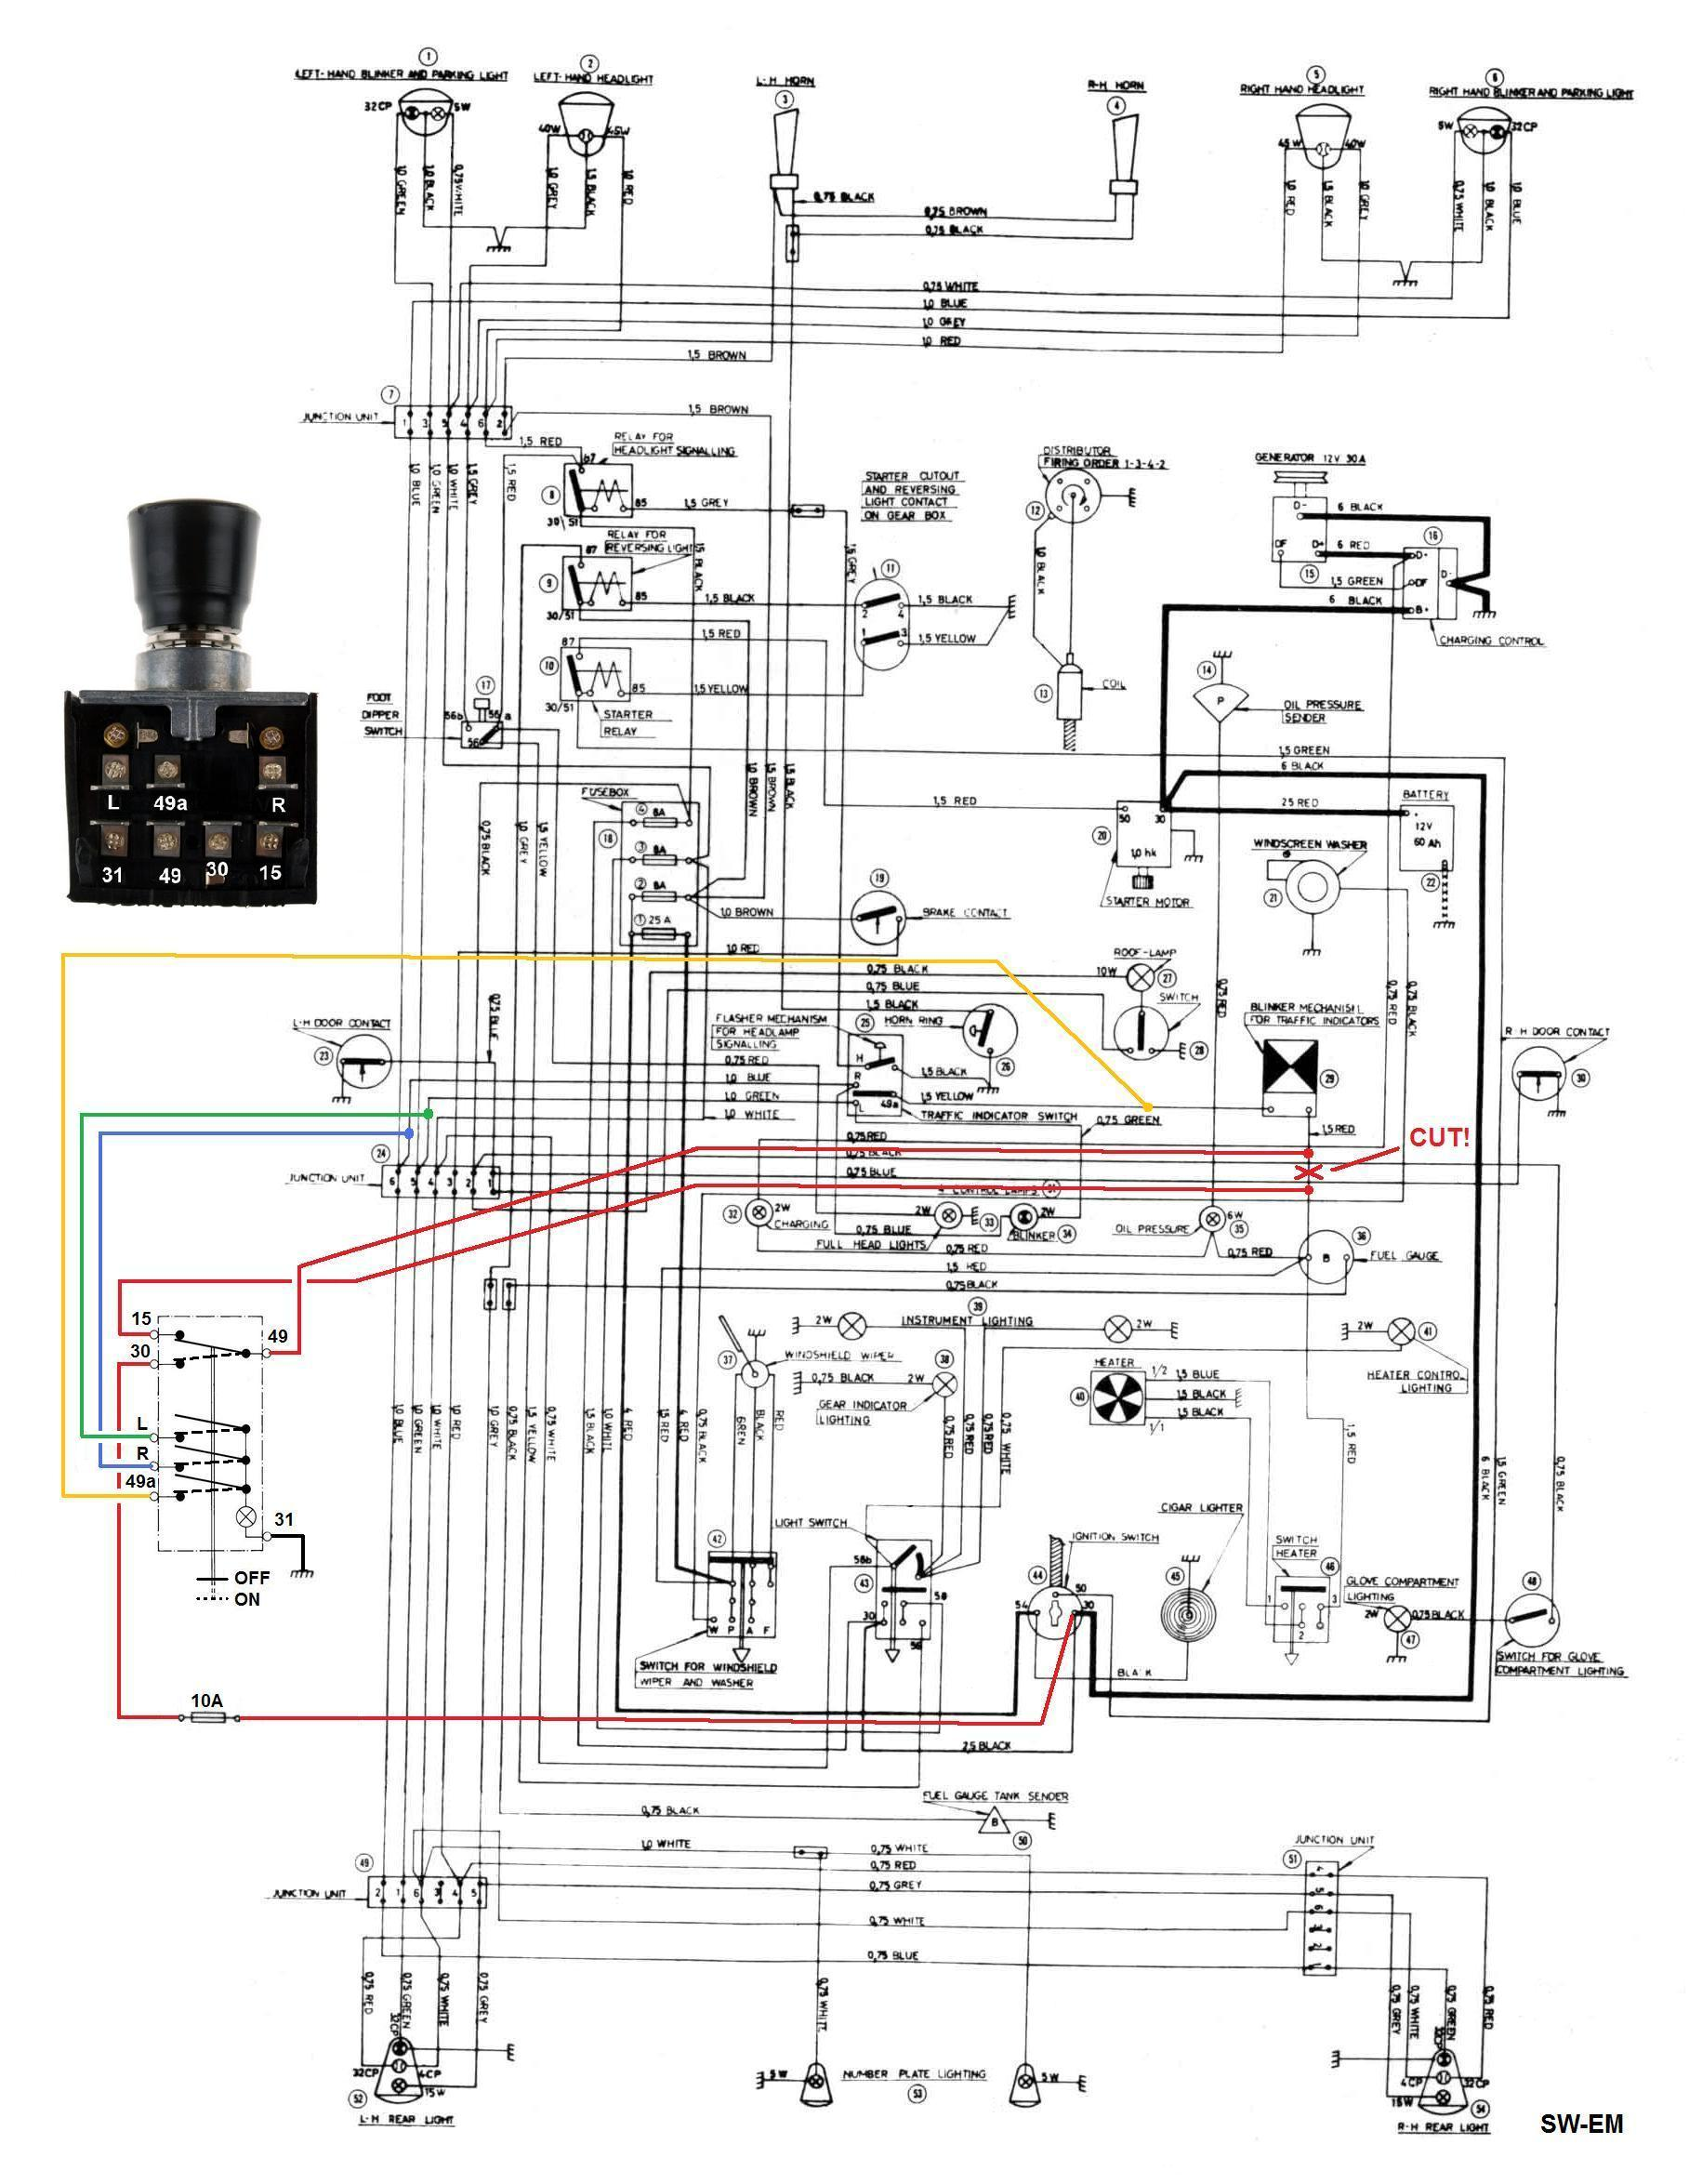 122S_Wiring_Diagram_Nesan_E_Flasher galls street thunder wiring diagram cb900 electrical diagram galls st110 wiring diagram at cos-gaming.co